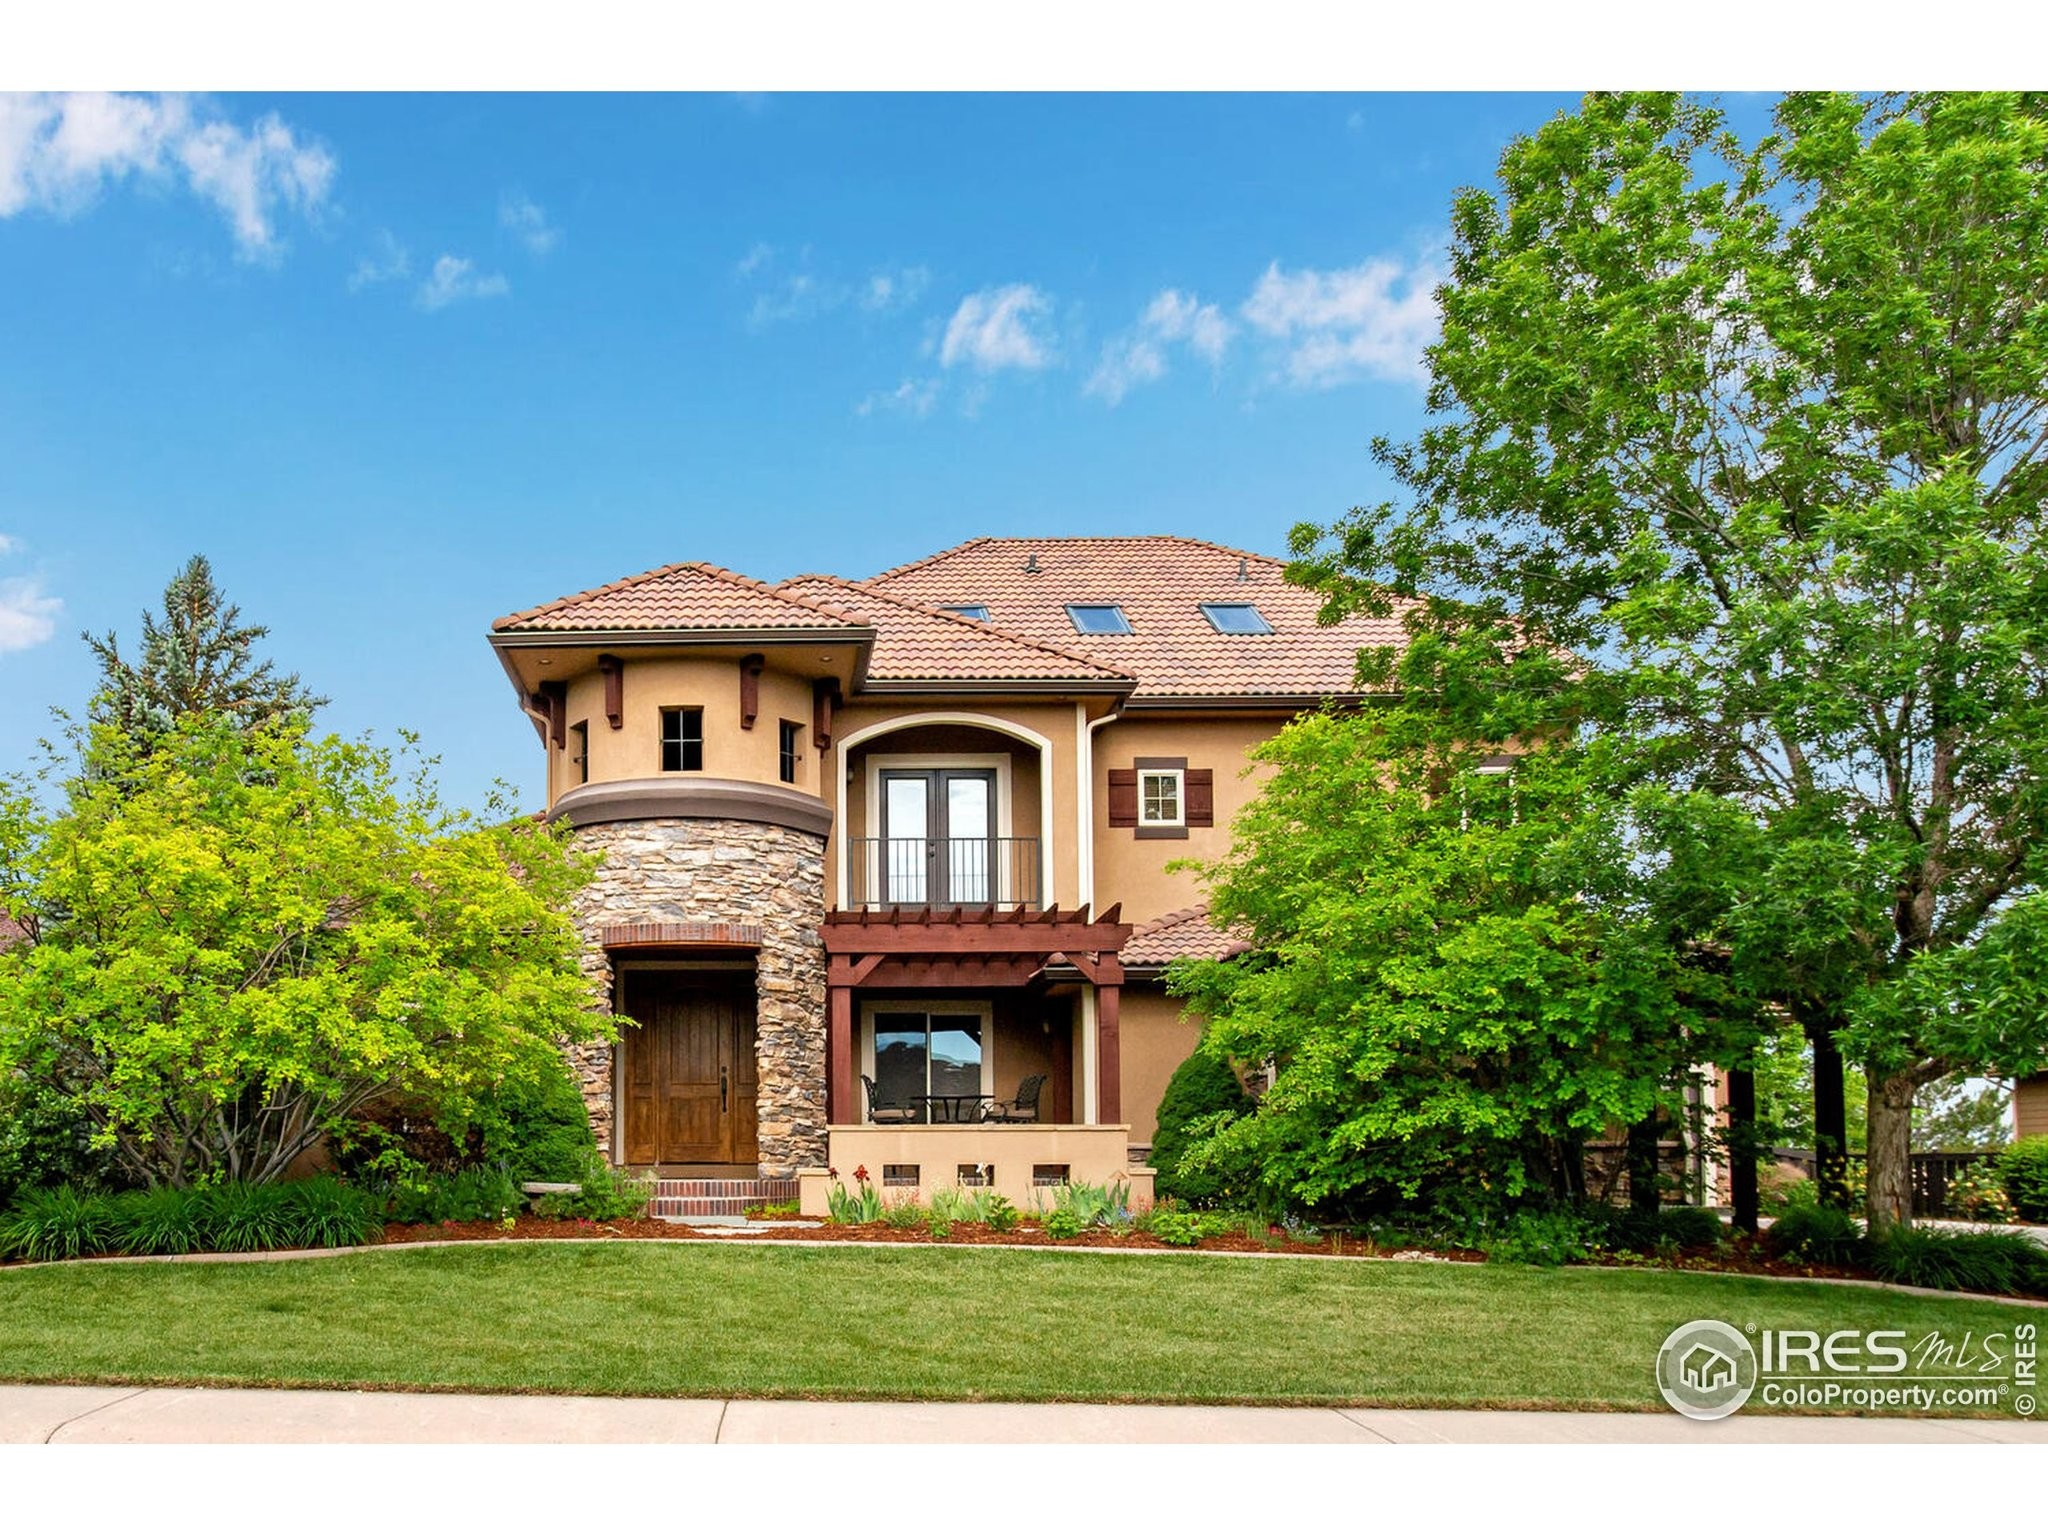 5-Bedroom House In Highland Meadows Golf Course